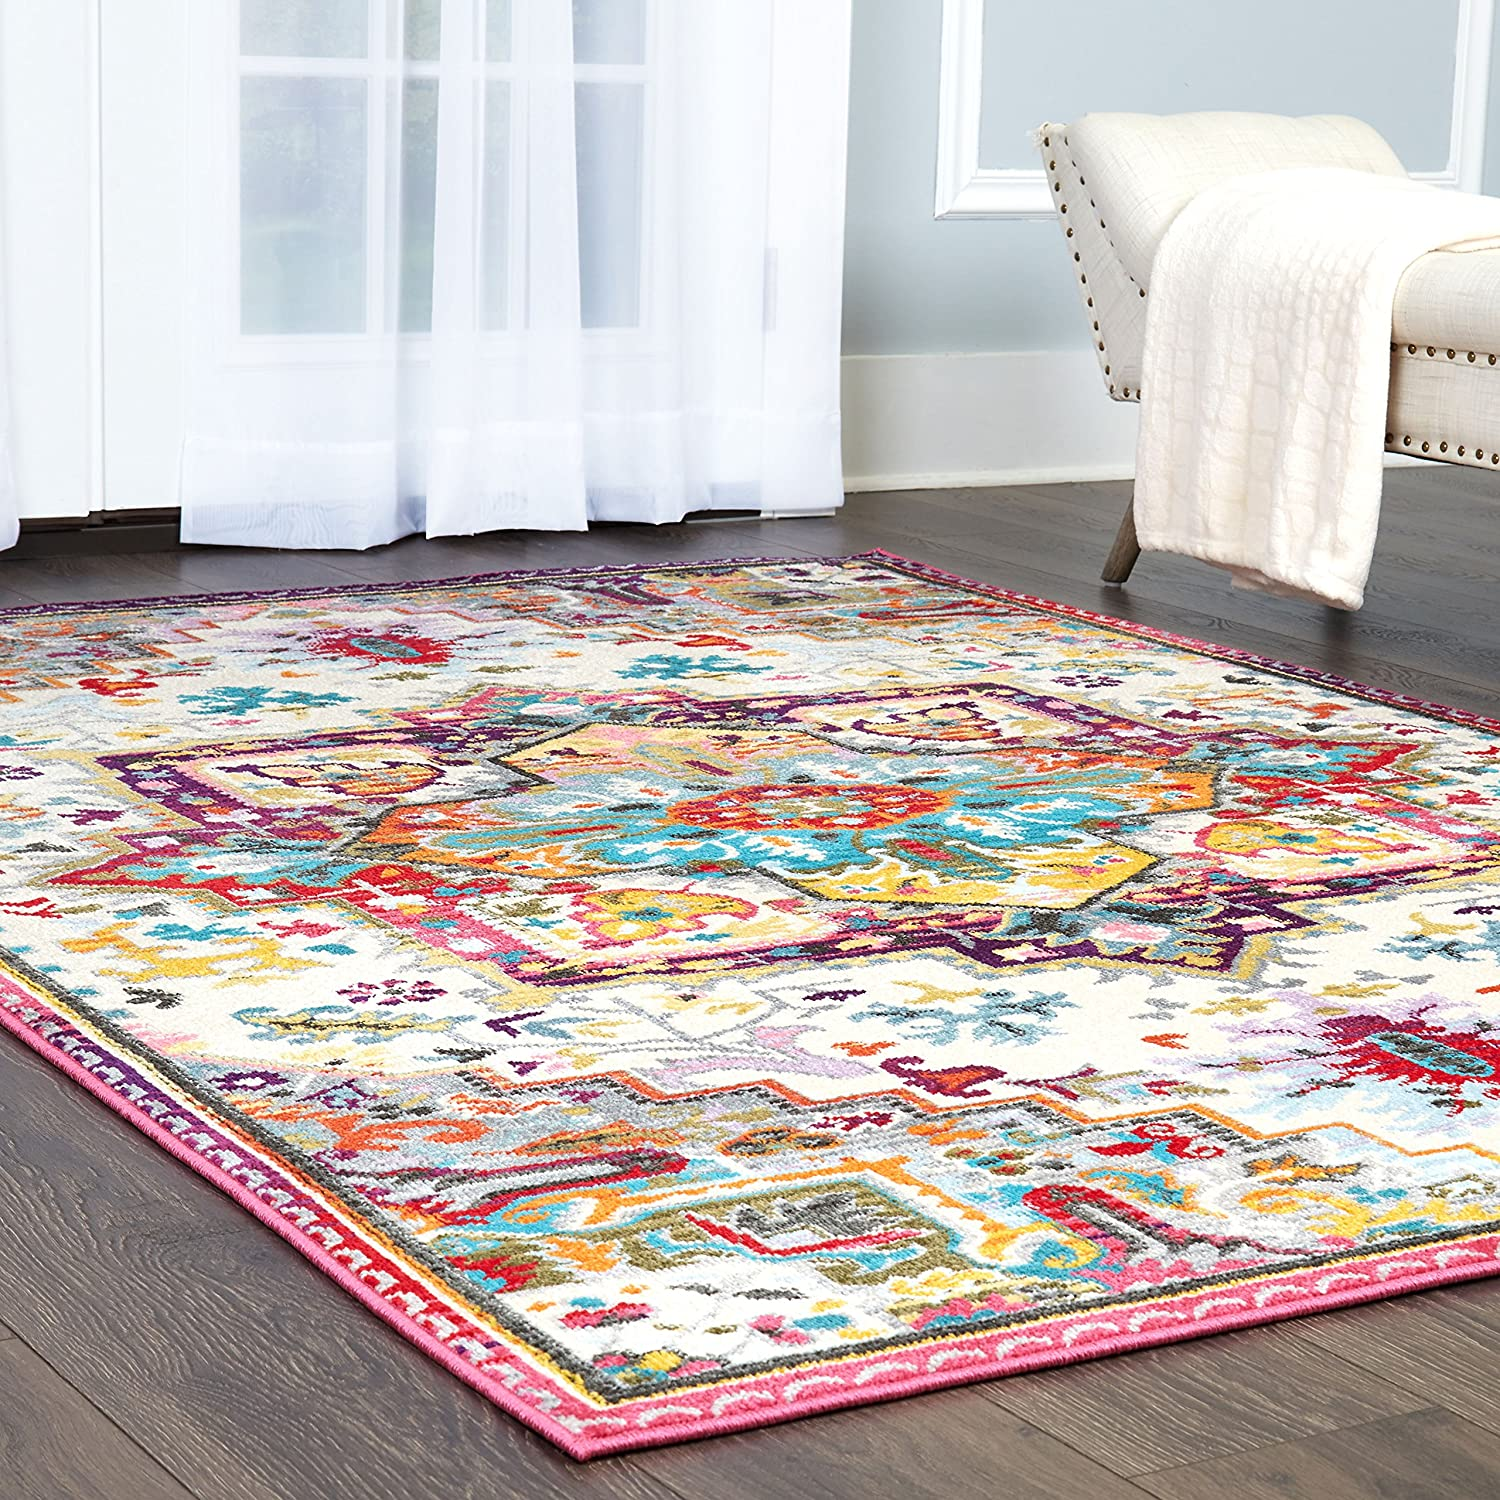 Clearance Home Dynamix Melody Tiana Modern Area Rug, Blue/Pink/Ivory 8'x10'